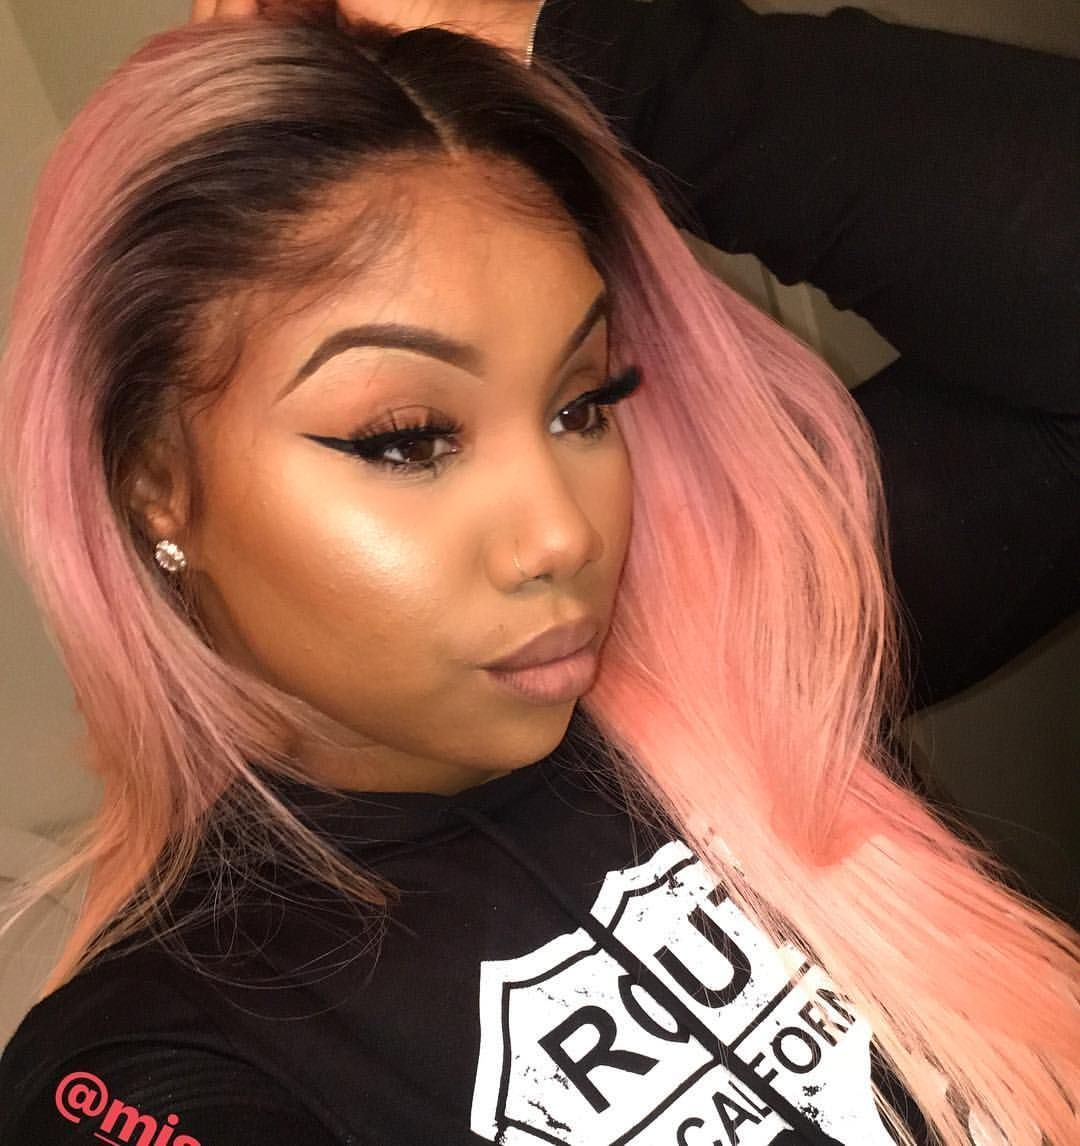 Most Current Screen Rose Gold Hair Black Girl Popular If You Ve Looked At The Locks Coloring Trends Black Girl Pink Hair Pink Hair Streaks Pink Hair Highlights